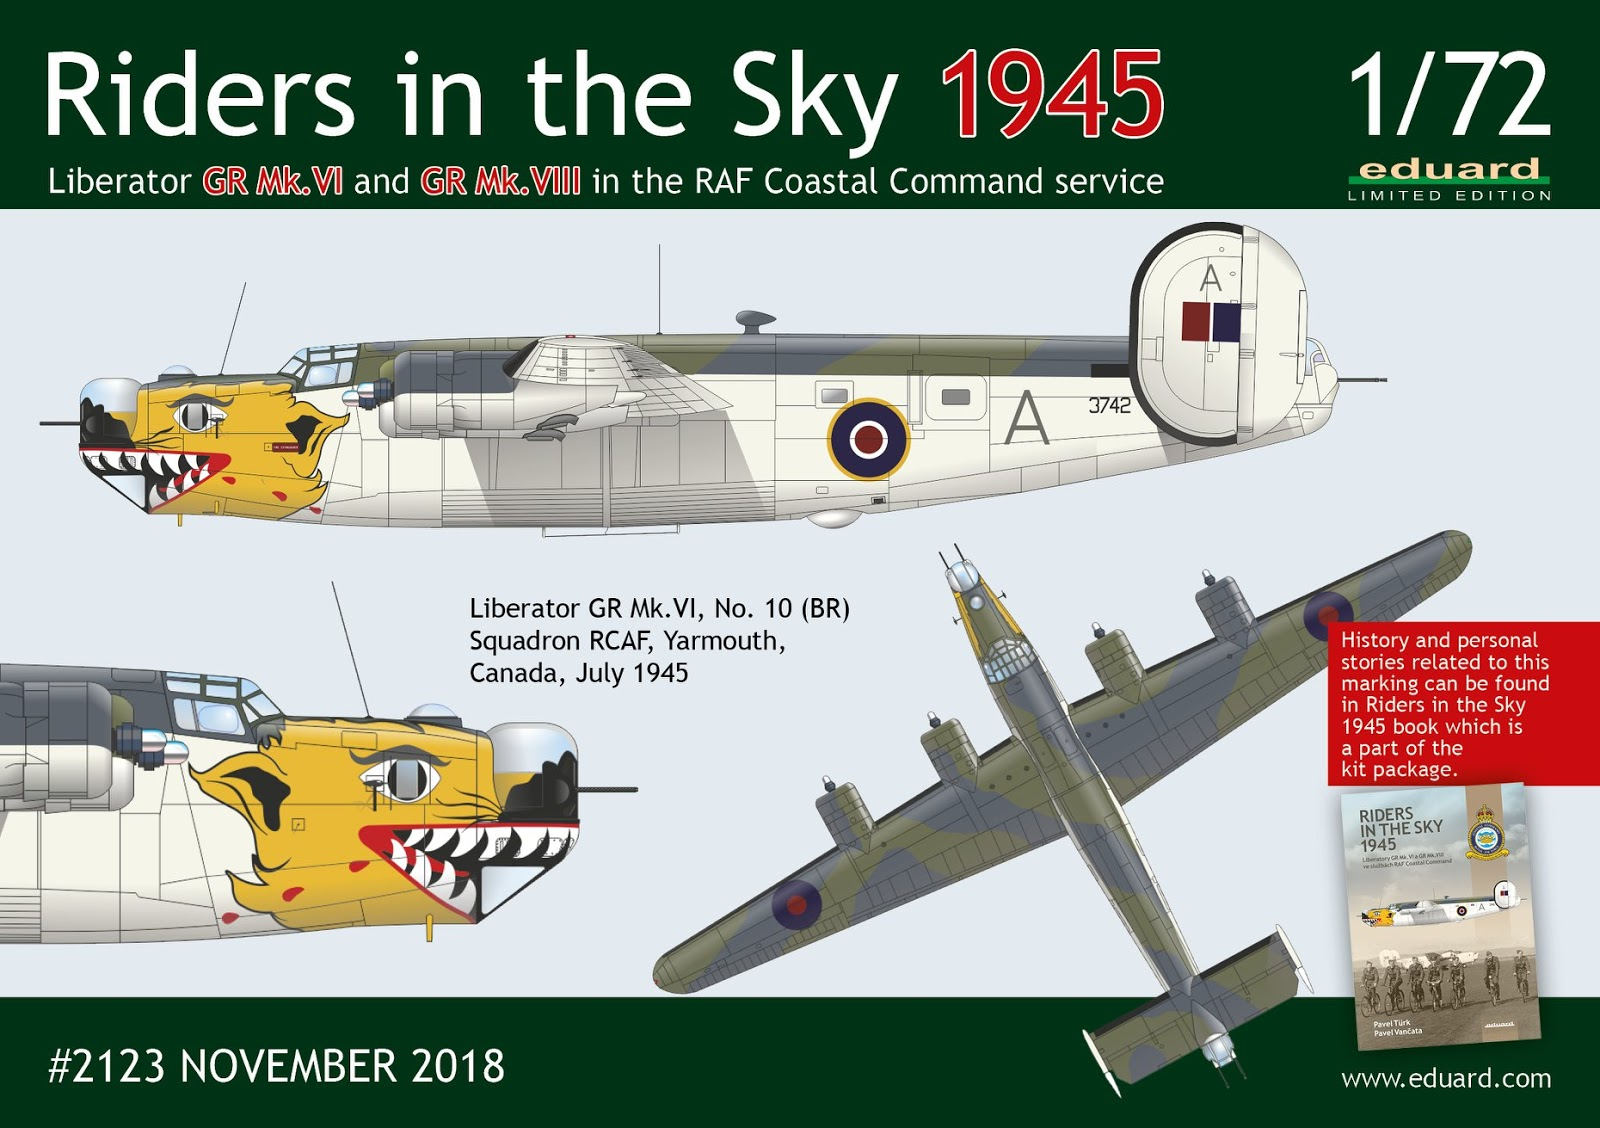 1:72 scale Limited Edition kit of WWII four-engines bomber aircraft Liberator GR Mk.VI and GR Mk.VIII model by Eduard.